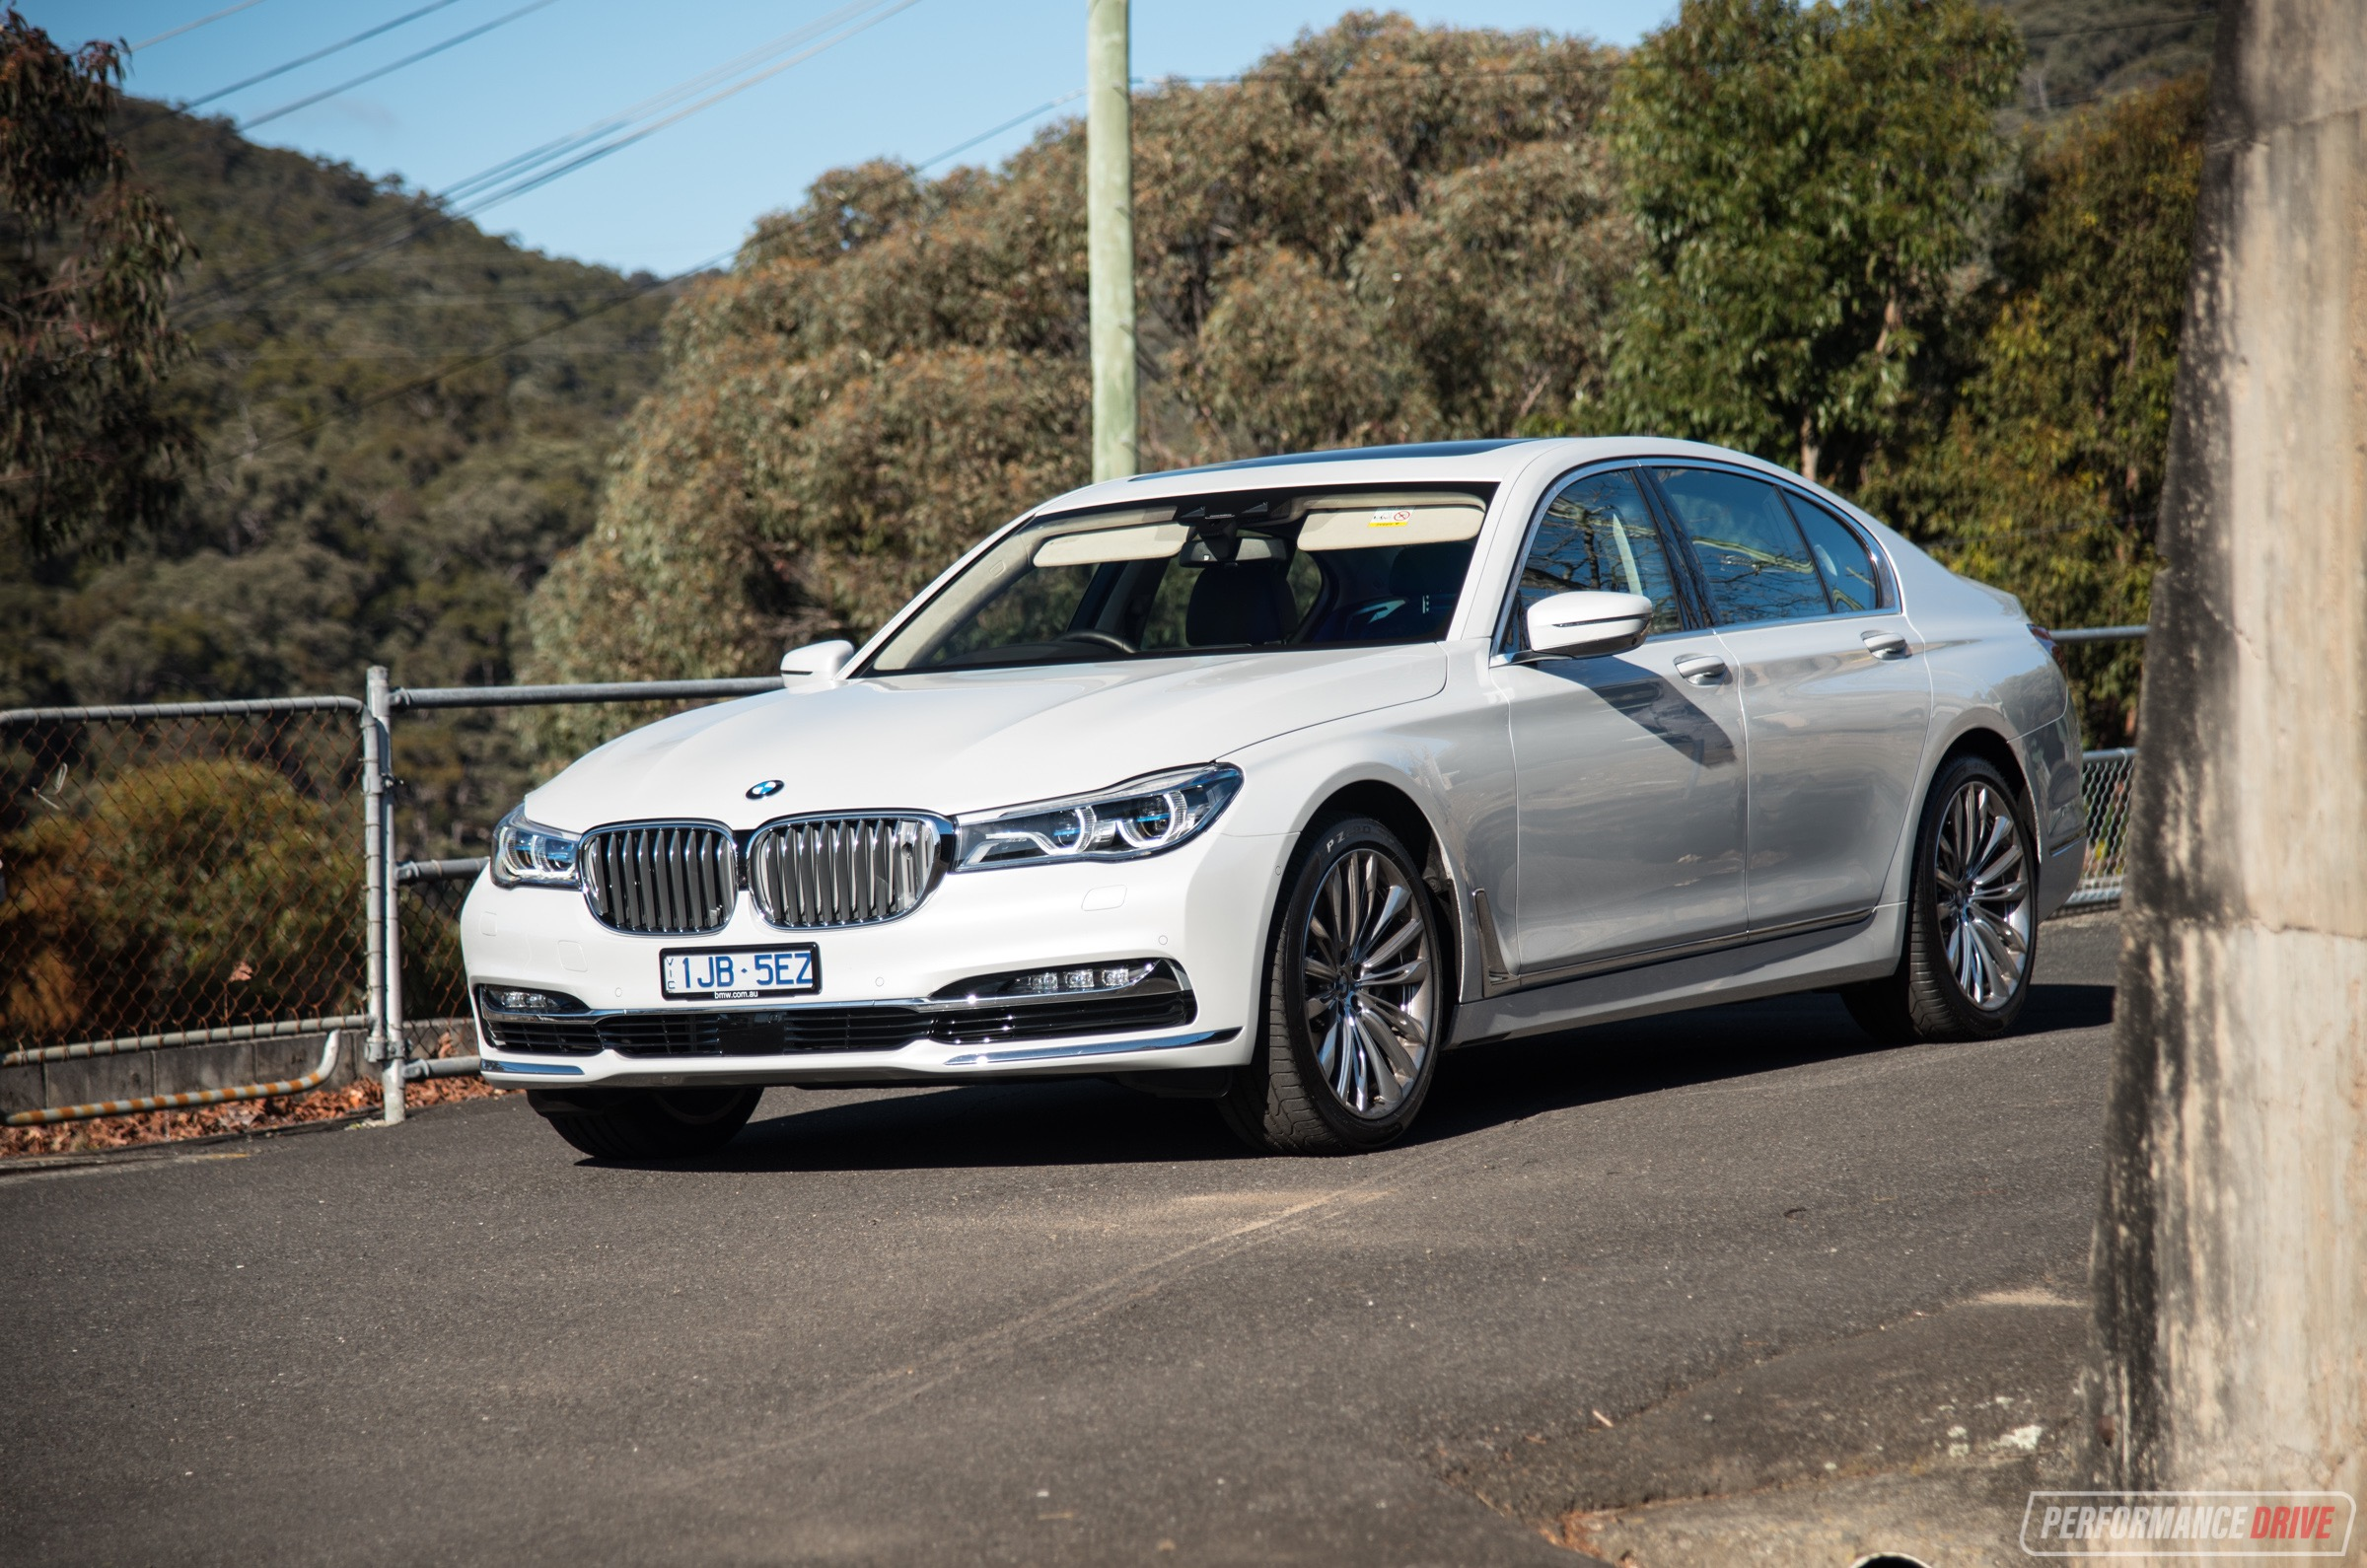 BMW Released The New 7 Series Last Year Aside From Boasting A Rather Fetching Design It Debuts An All Modular Platform Called OKL Which Is Infused